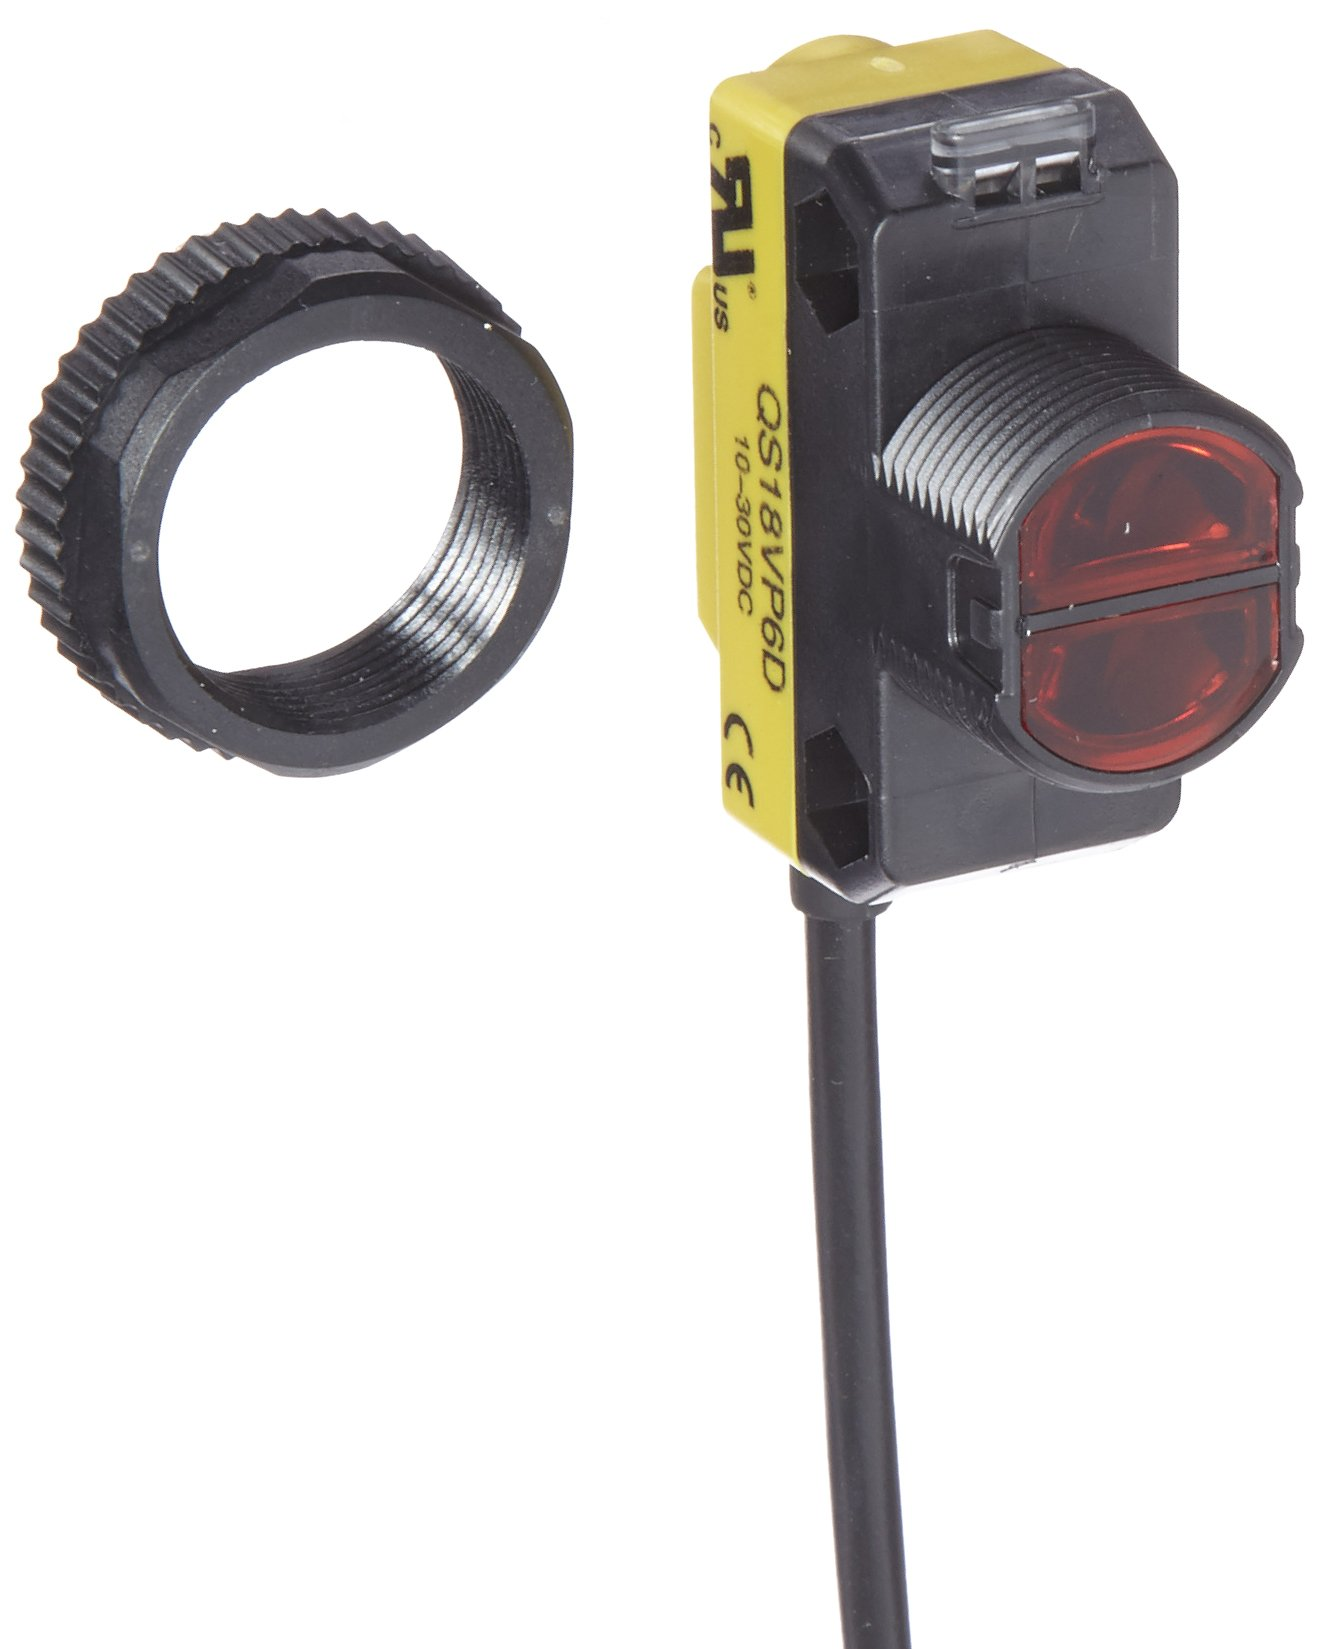 Banner QS18VP6D World Beam Universal Compact Sensor, Opposed Mode Emitter and Receiver, Infrared LED, Diffuse Mode, PNP Output Type, 450mm Range, 4 Wires, 2m Cable Length